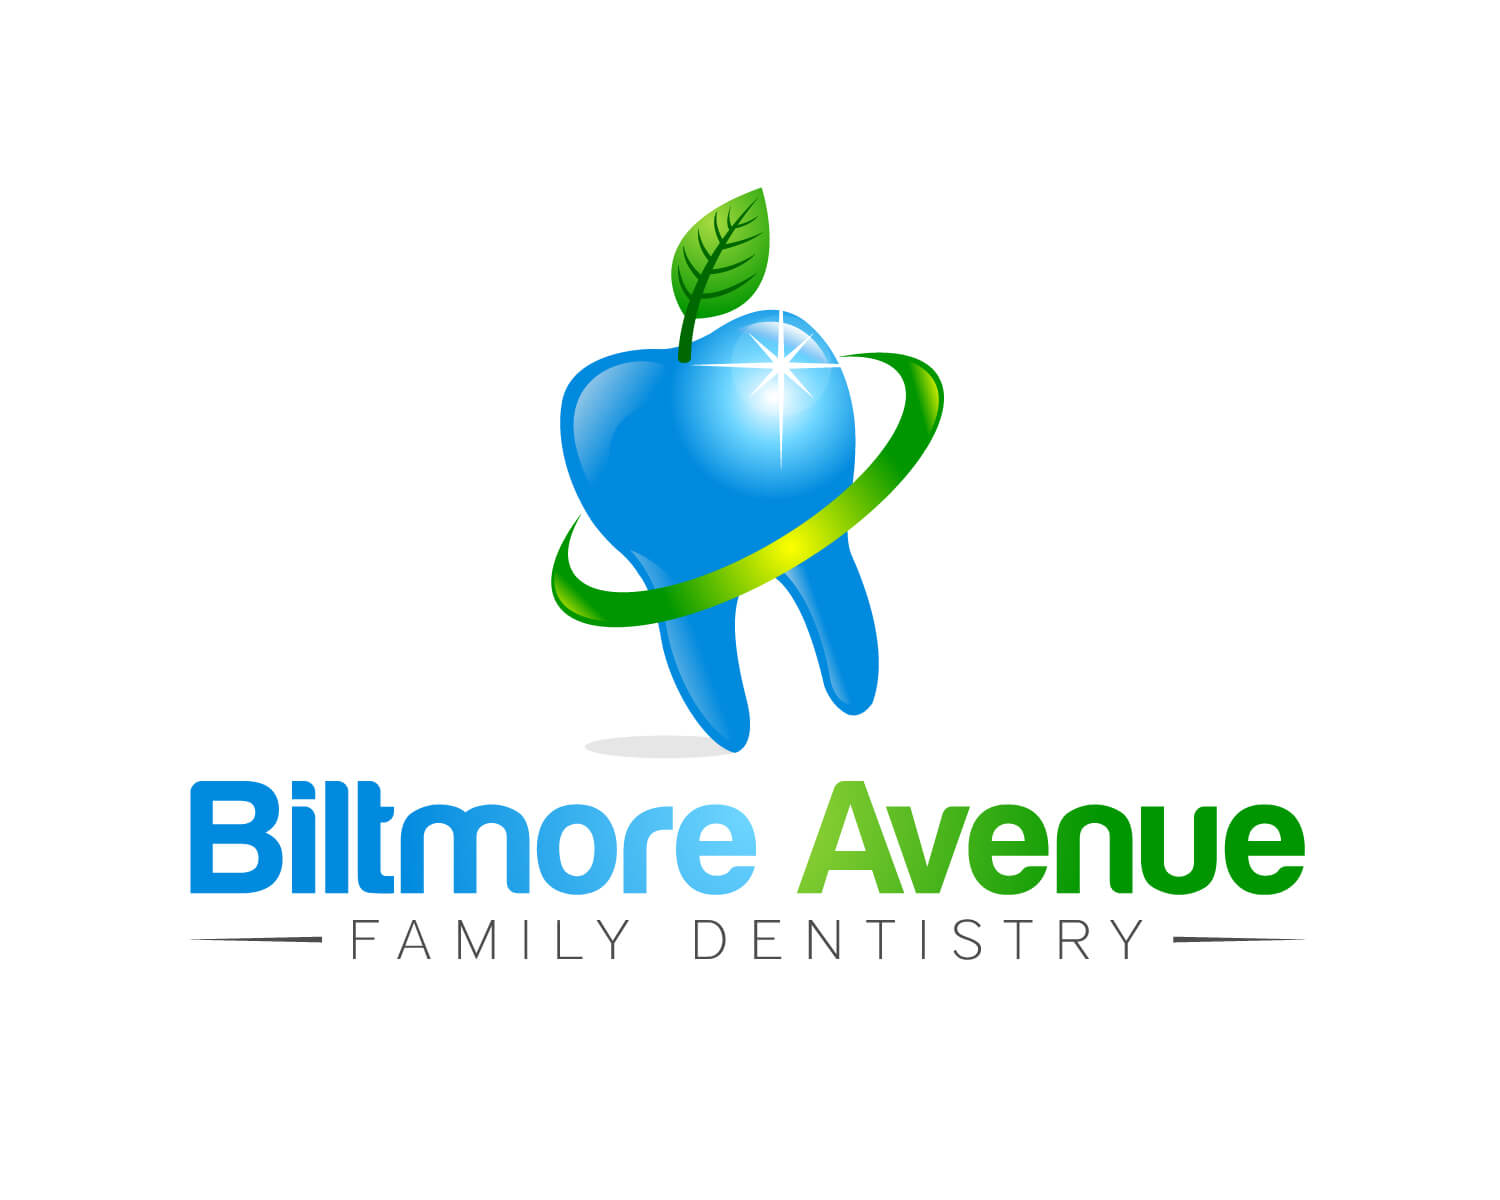 Biltmore Avenue Family Dentistry